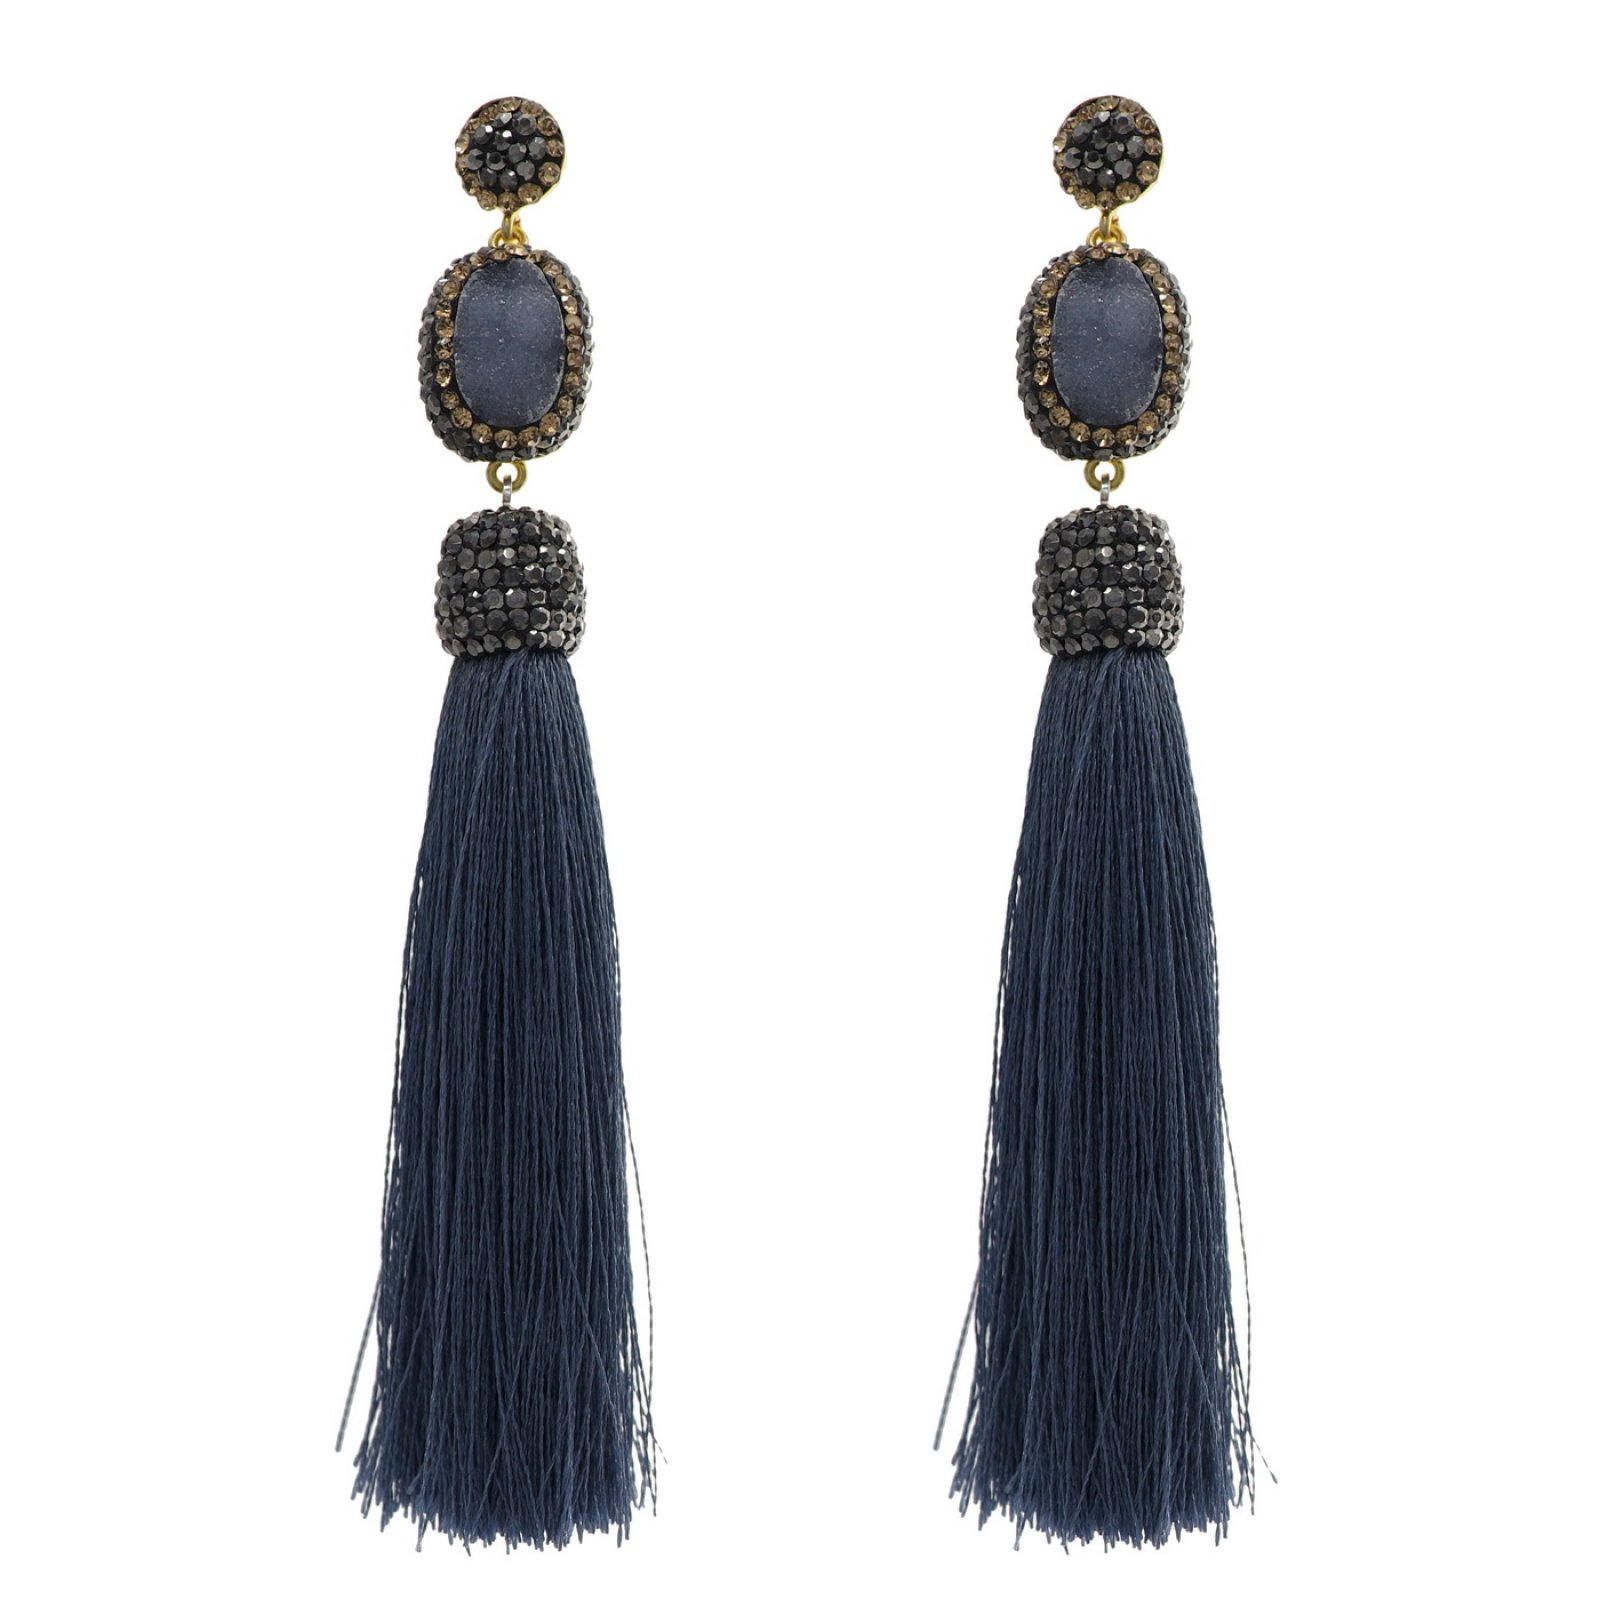 DRE111 - CALCEDONY DRUZY LONG TASSEL EARRING